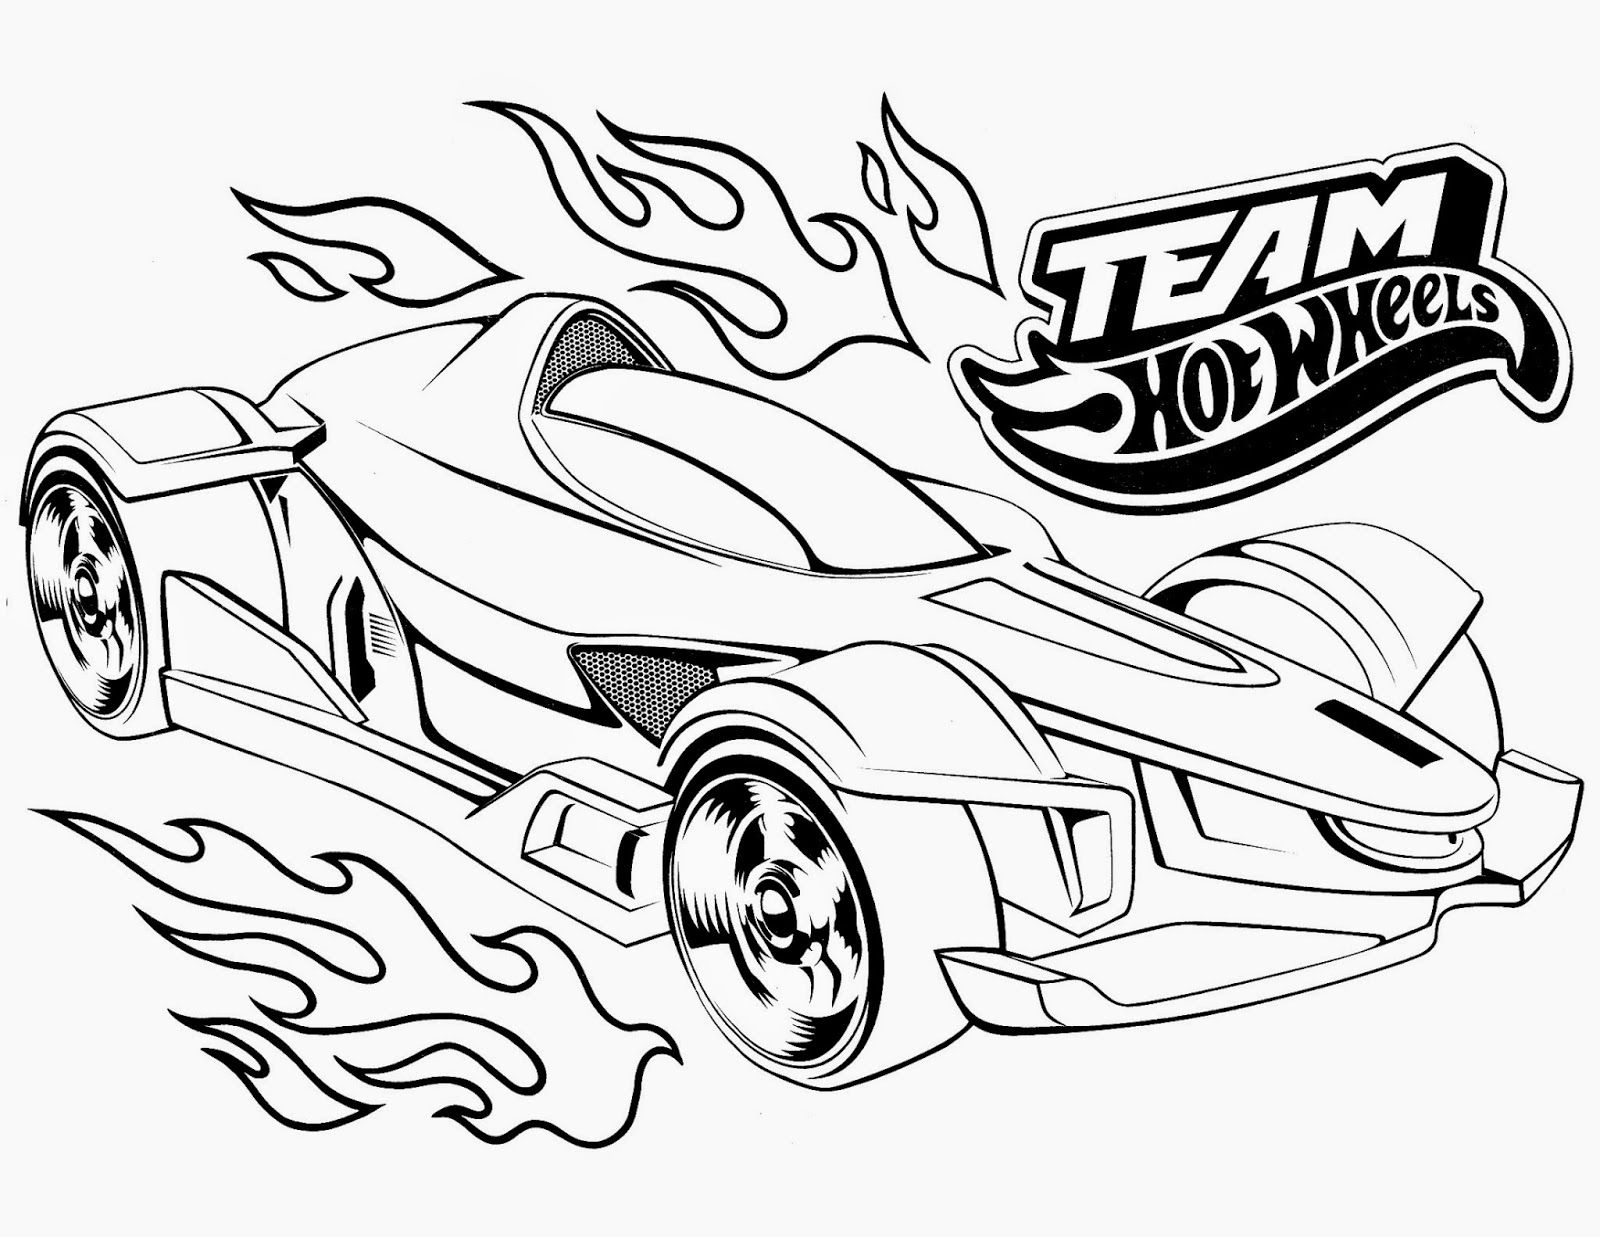 Coloring derby cars - Hot Wheels Racing League Hot Wheels Coloring Pages Set 5